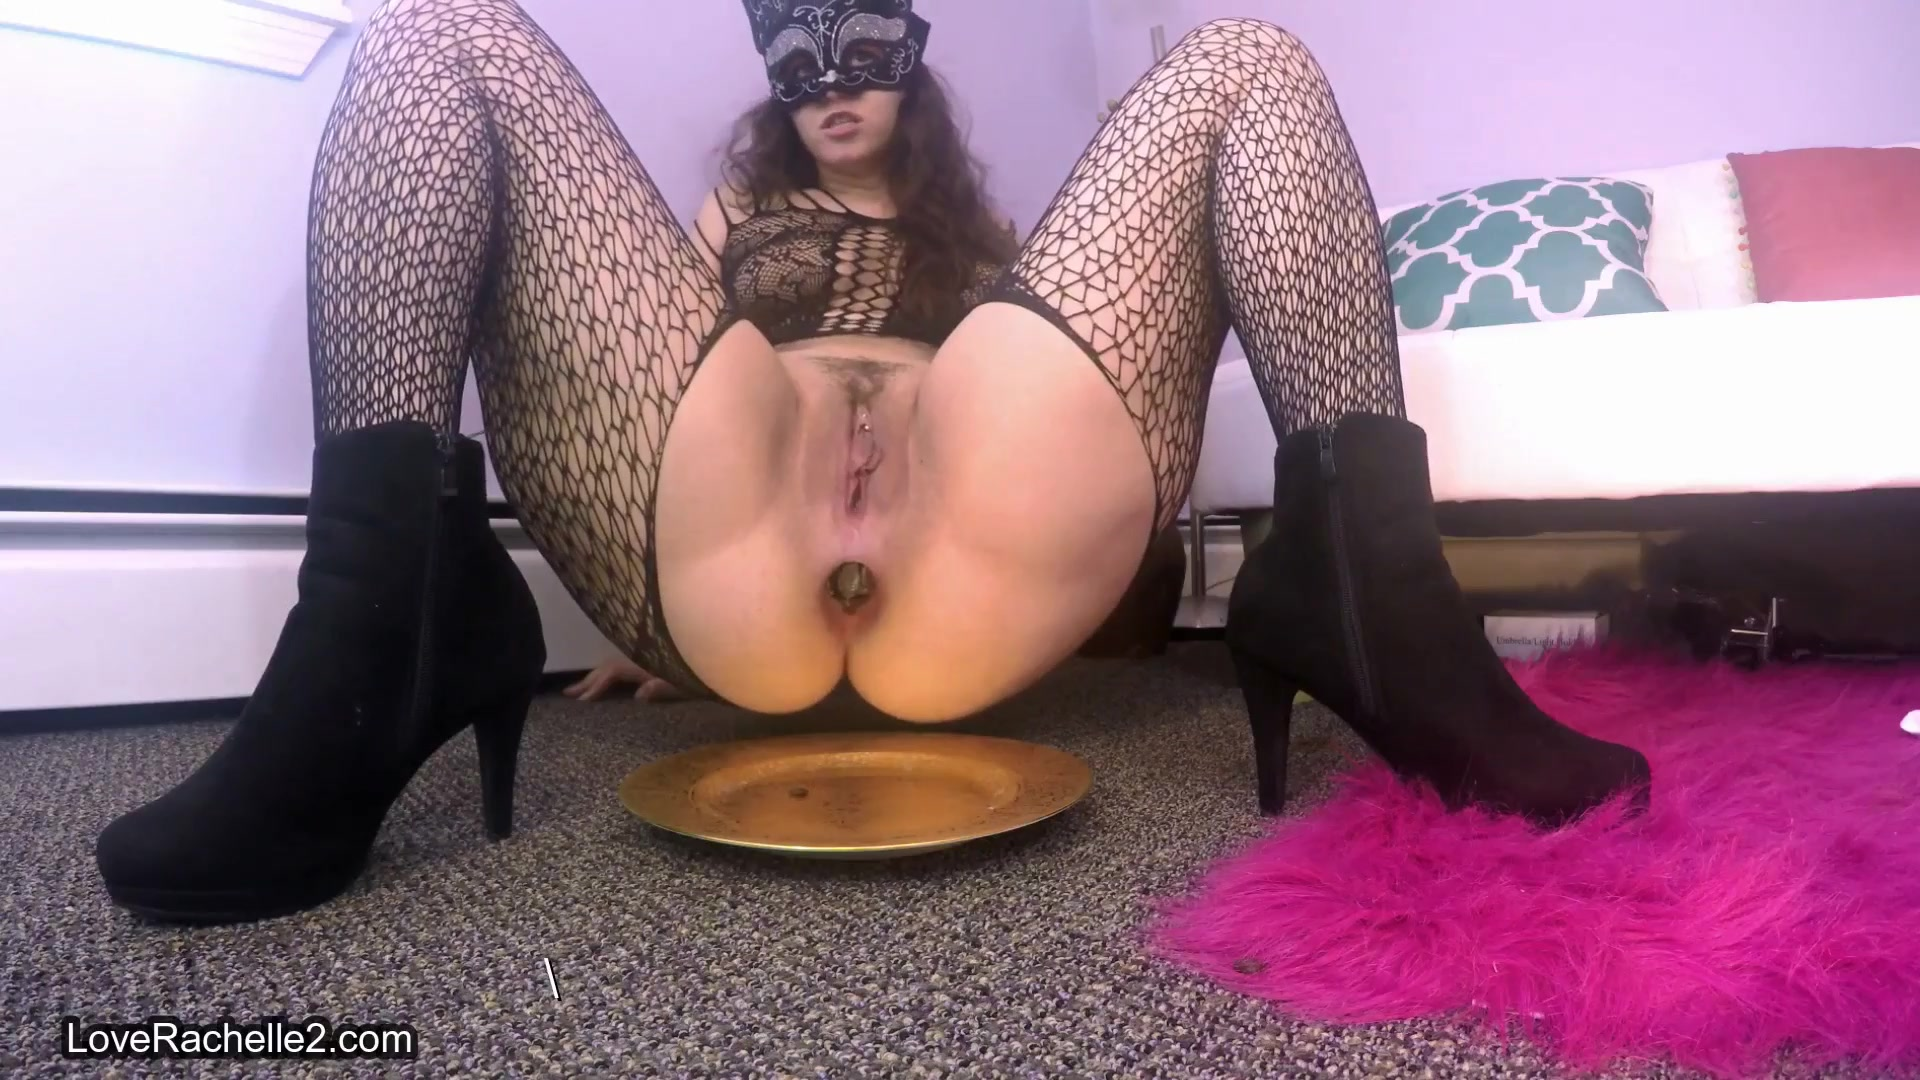 I Know What You REALLY Wan Eat Up!-scatbb.com LoveRachelle2 00002